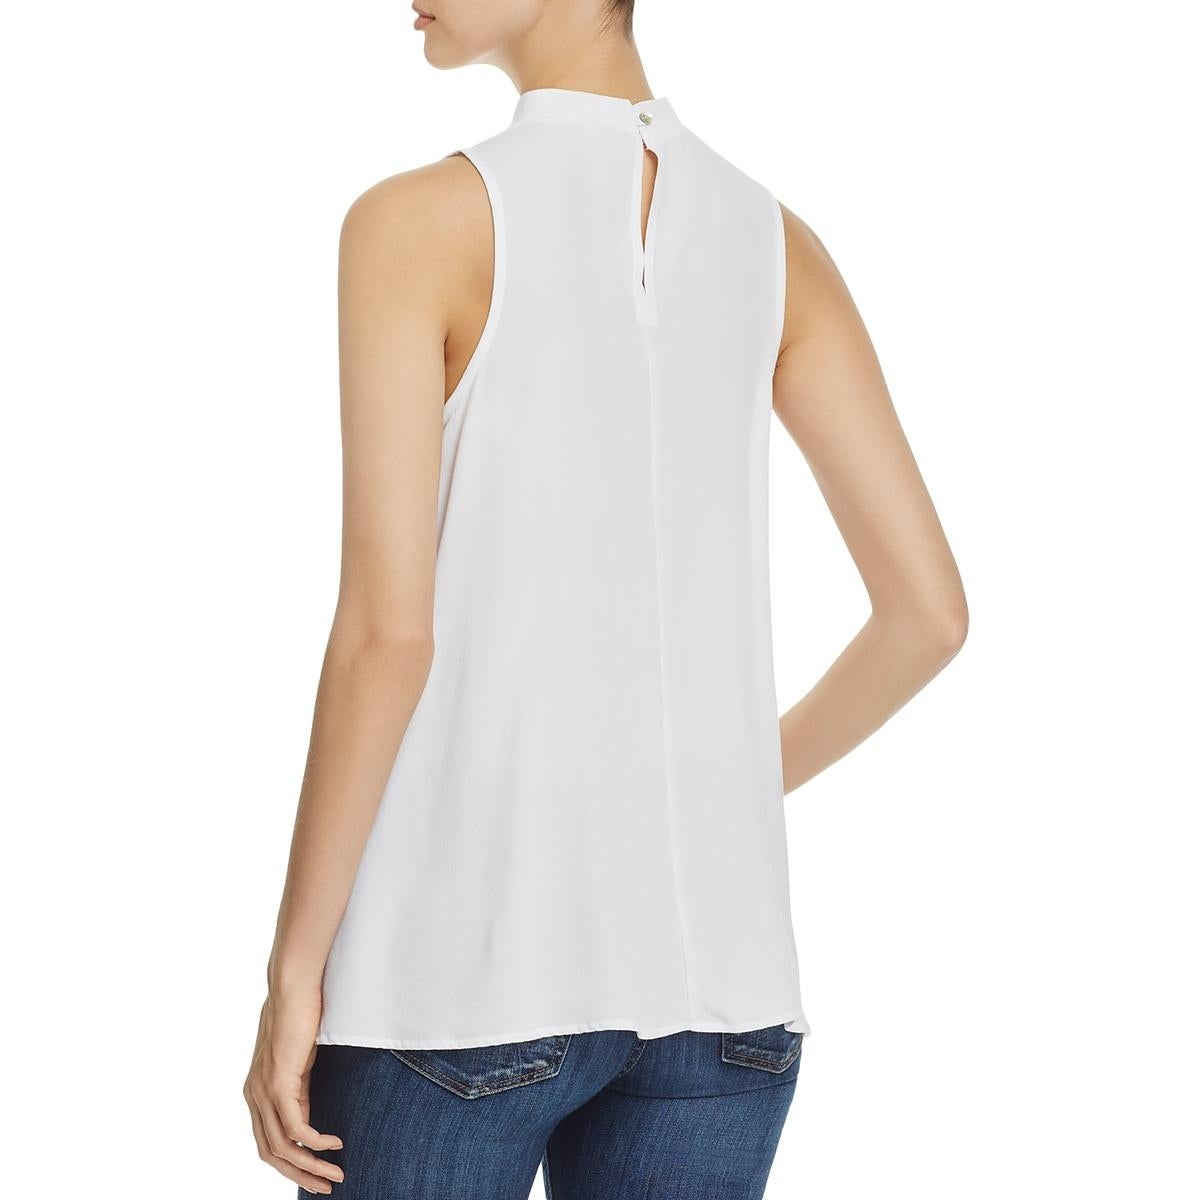 4cfd4f1518dd13 Shop Elan Womens Tank Top Choker V-Neck - Free Shipping On Orders Over  45  - Overstock.com - 20742060